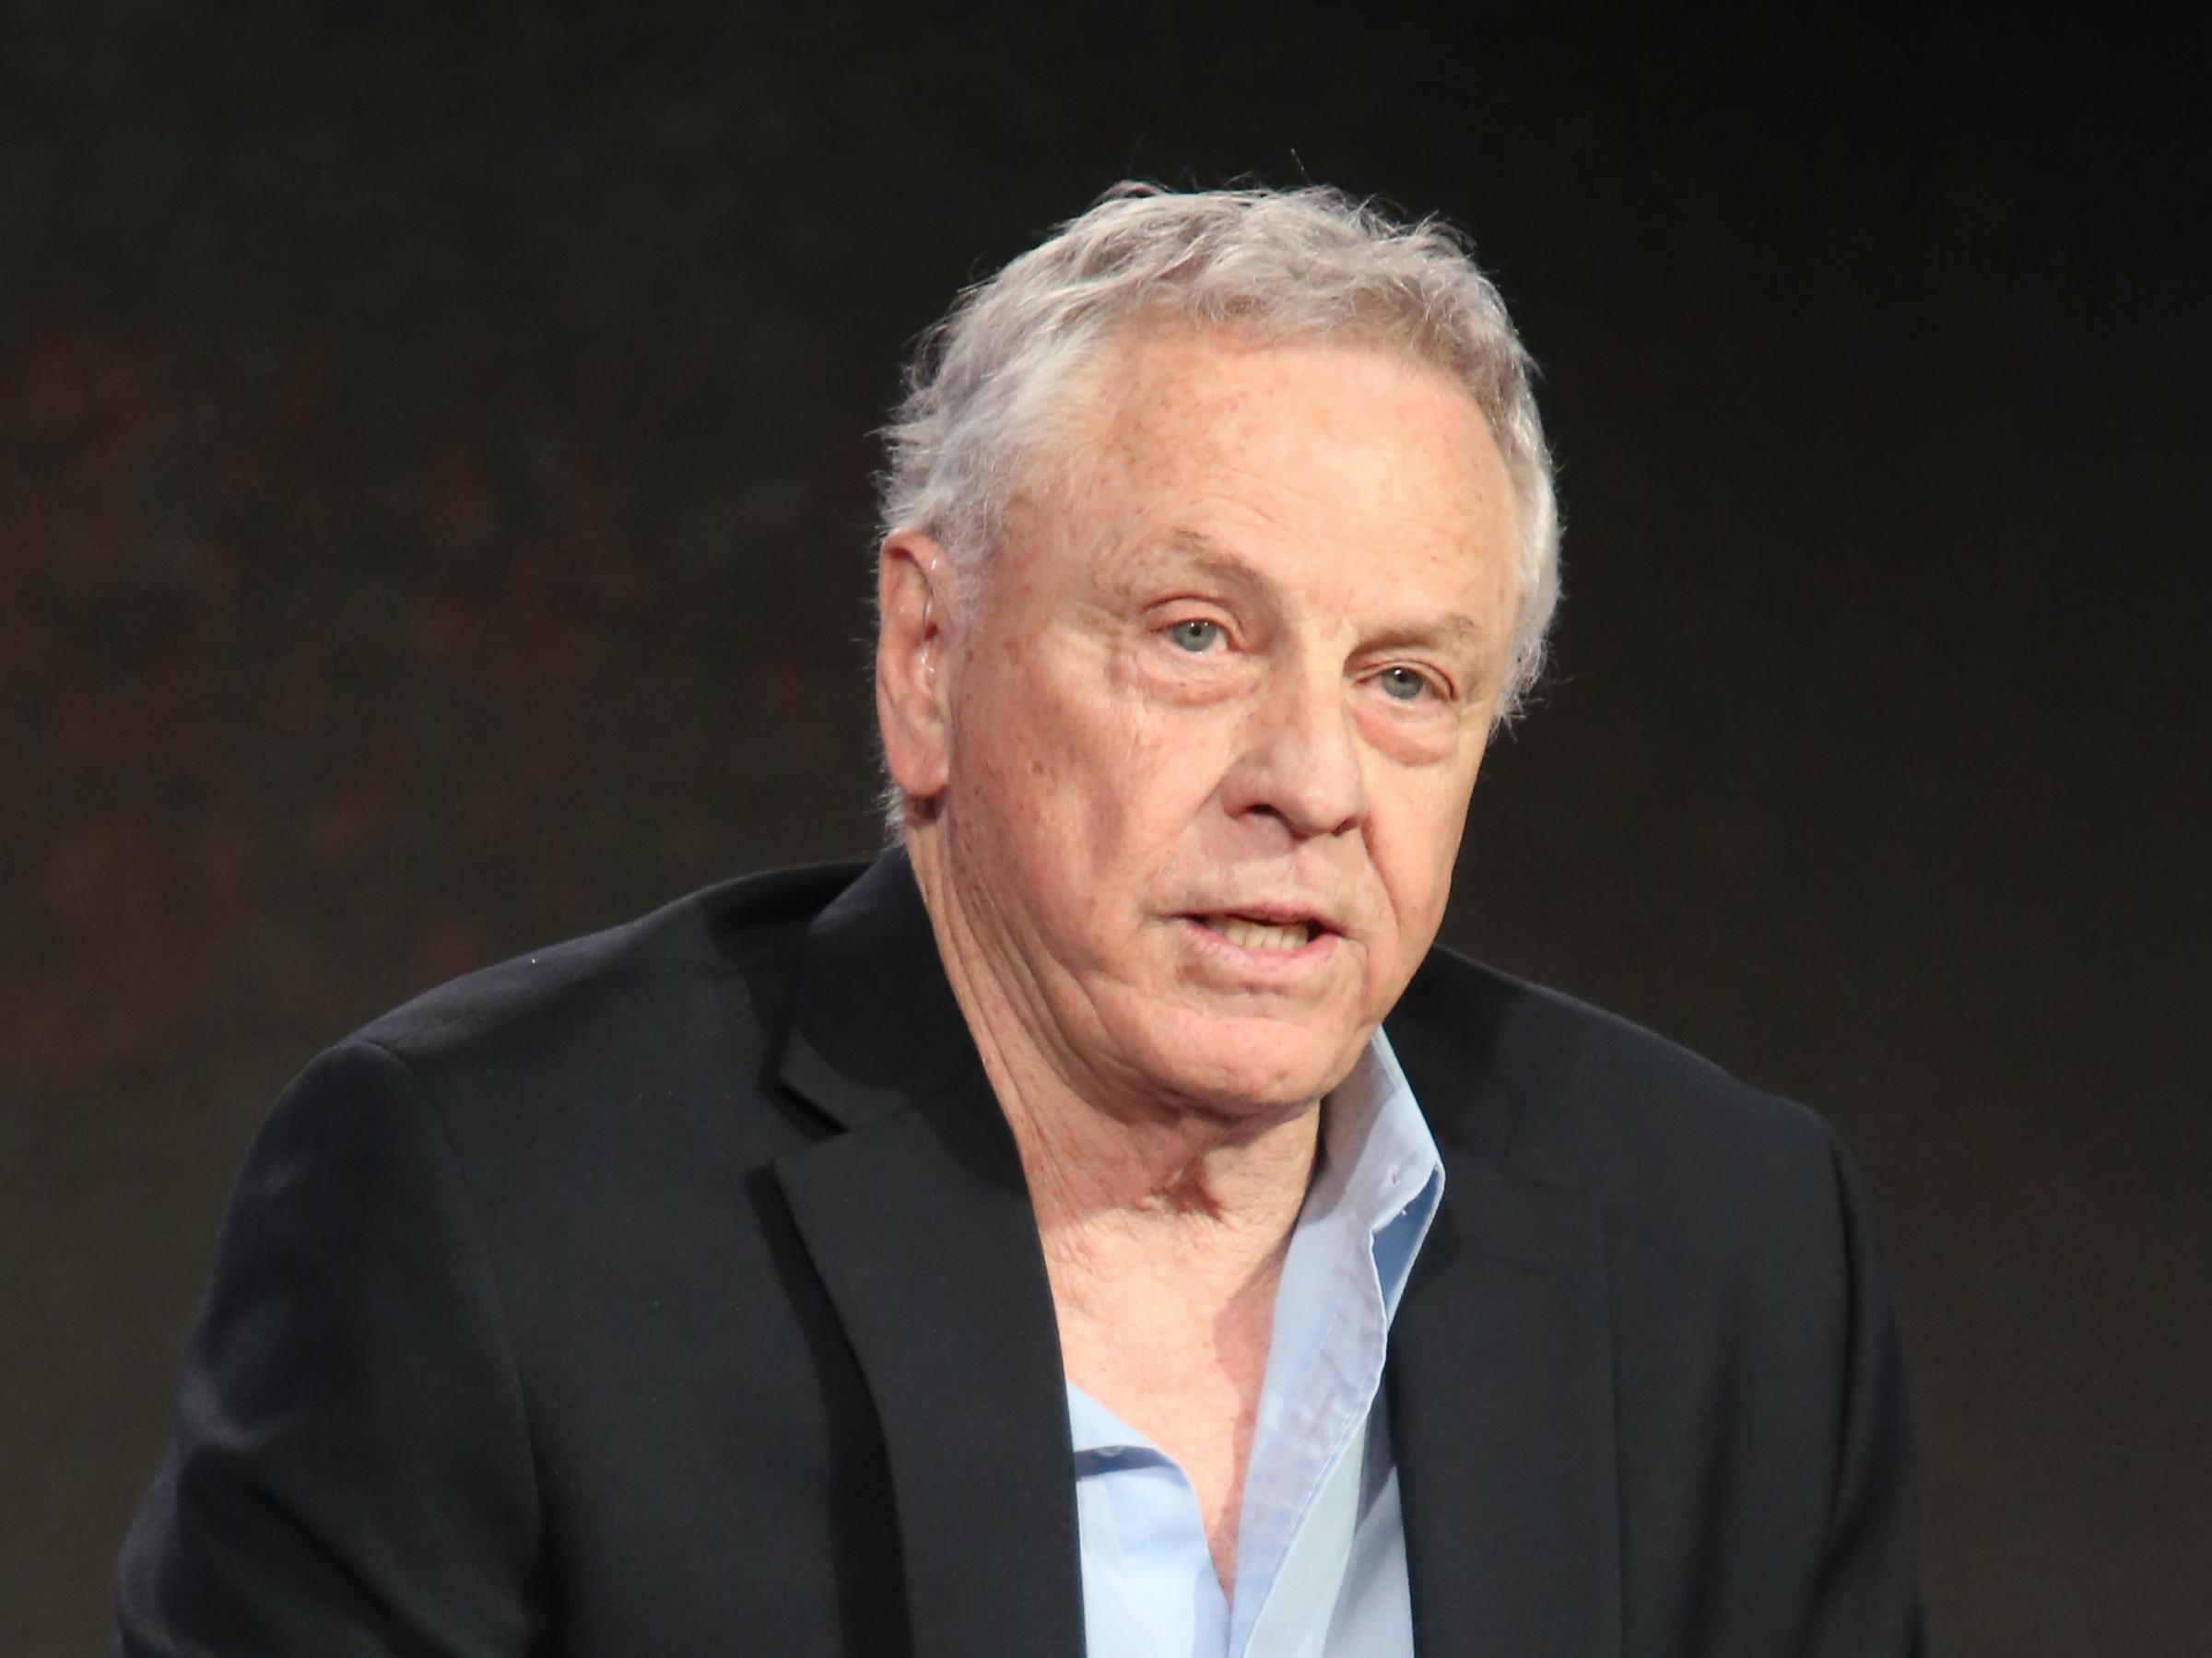 Southern Poverty Law Center Fires Morris Dees, Its Co-Founder